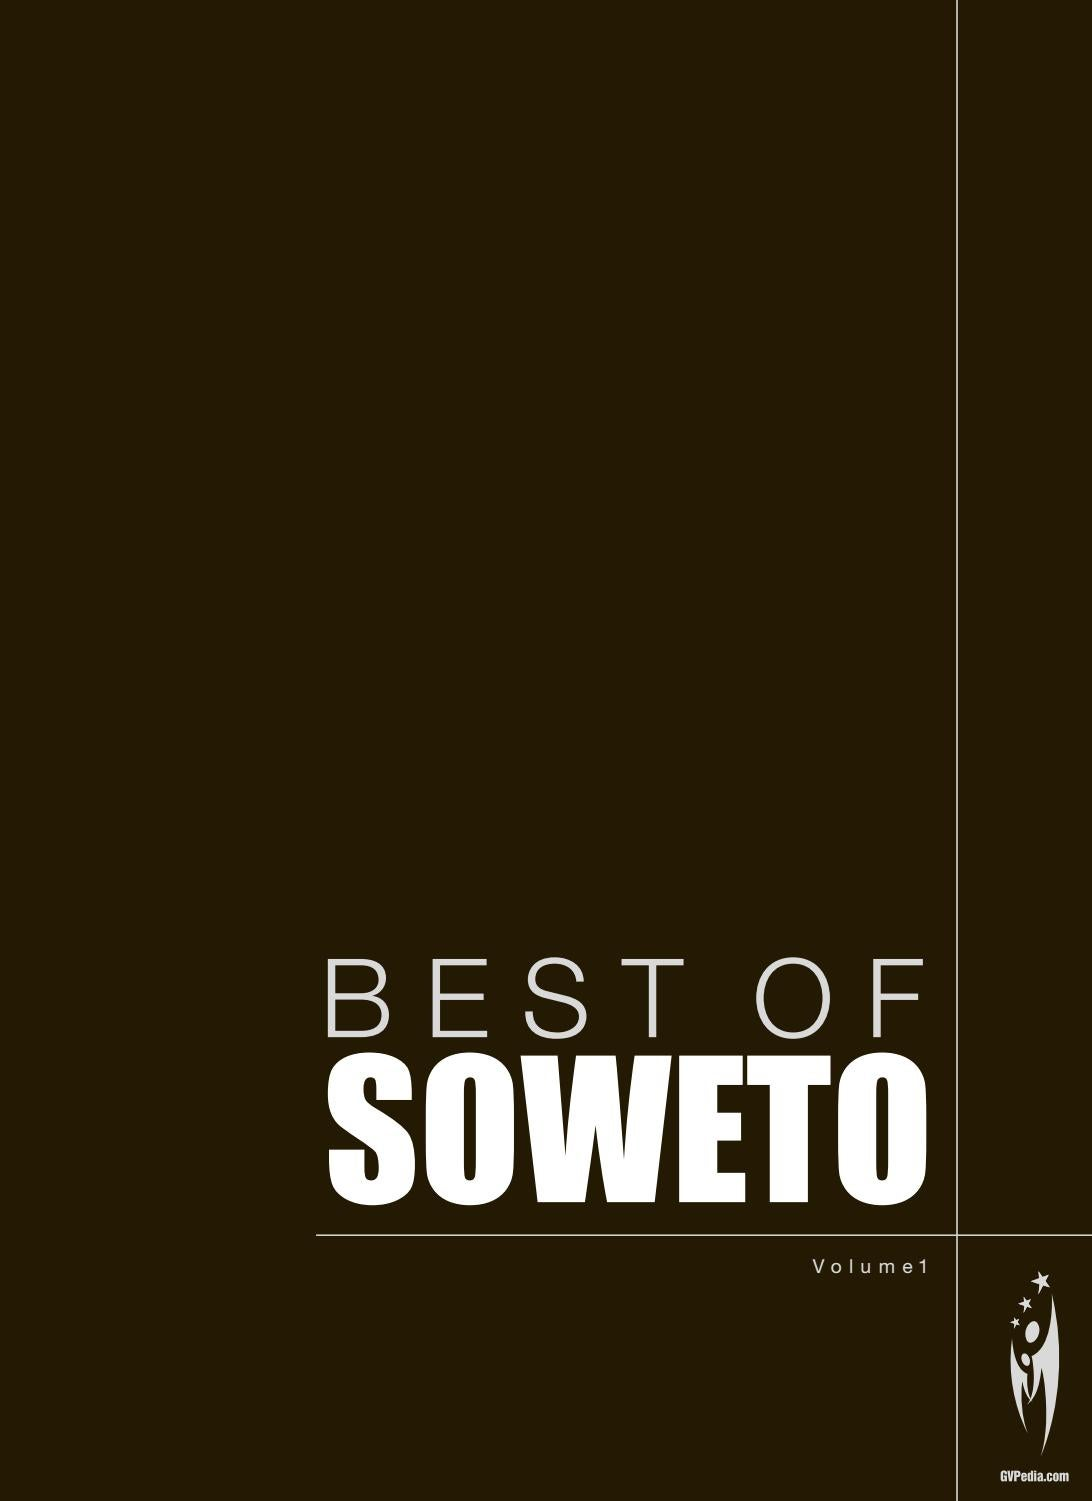 Best of soweto volume 1